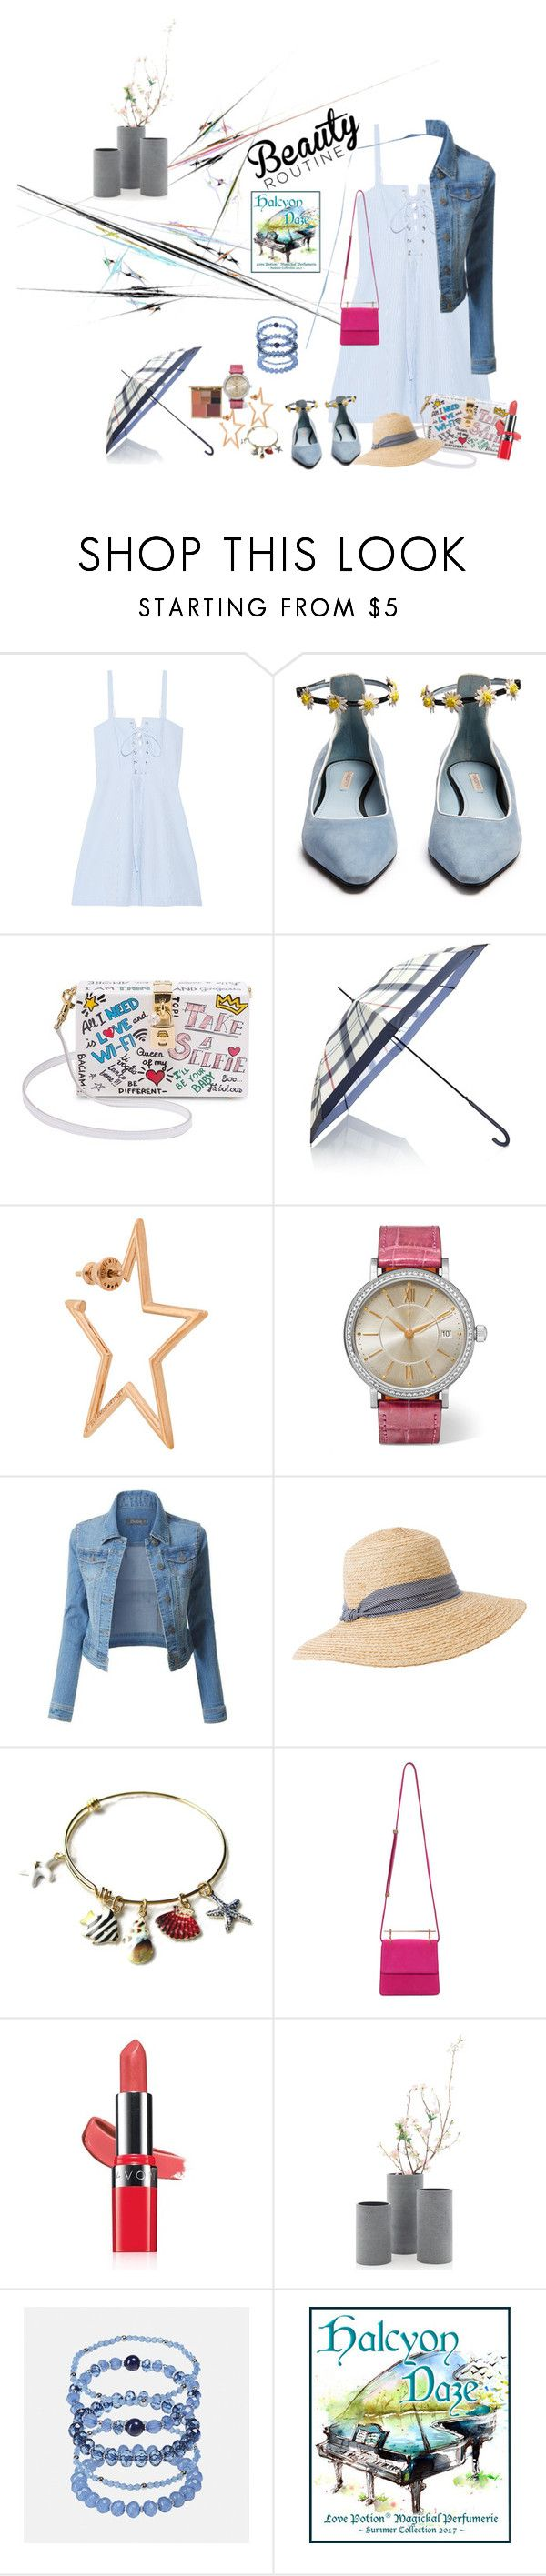 """bsejc80@gmail.com"" by conley-esperanzaj1957 on Polyvore featuring Solid & Striped, Fabrizio Viti, Dolce&Gabbana, Barbour, STELLA McCARTNEY, IWC Schaffhausen, Hat Attack, M2Malletier, Avon and Avenue"